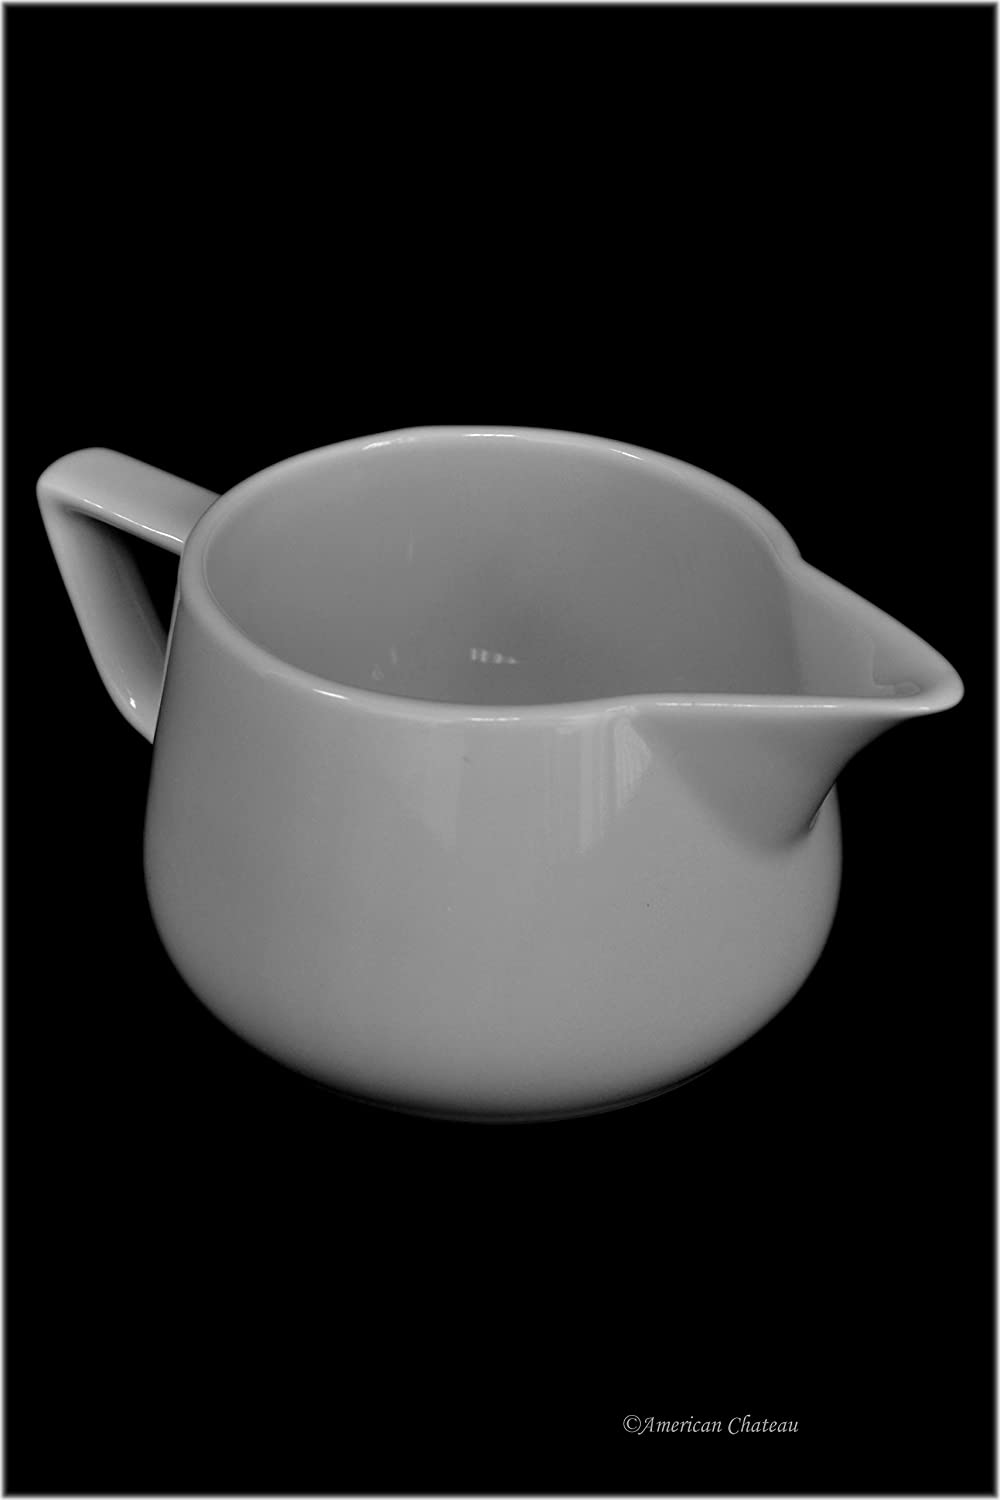 Small 12oz White Porcelain Gravy Sauce Bowl Boat with Spout & Handle American Chateau